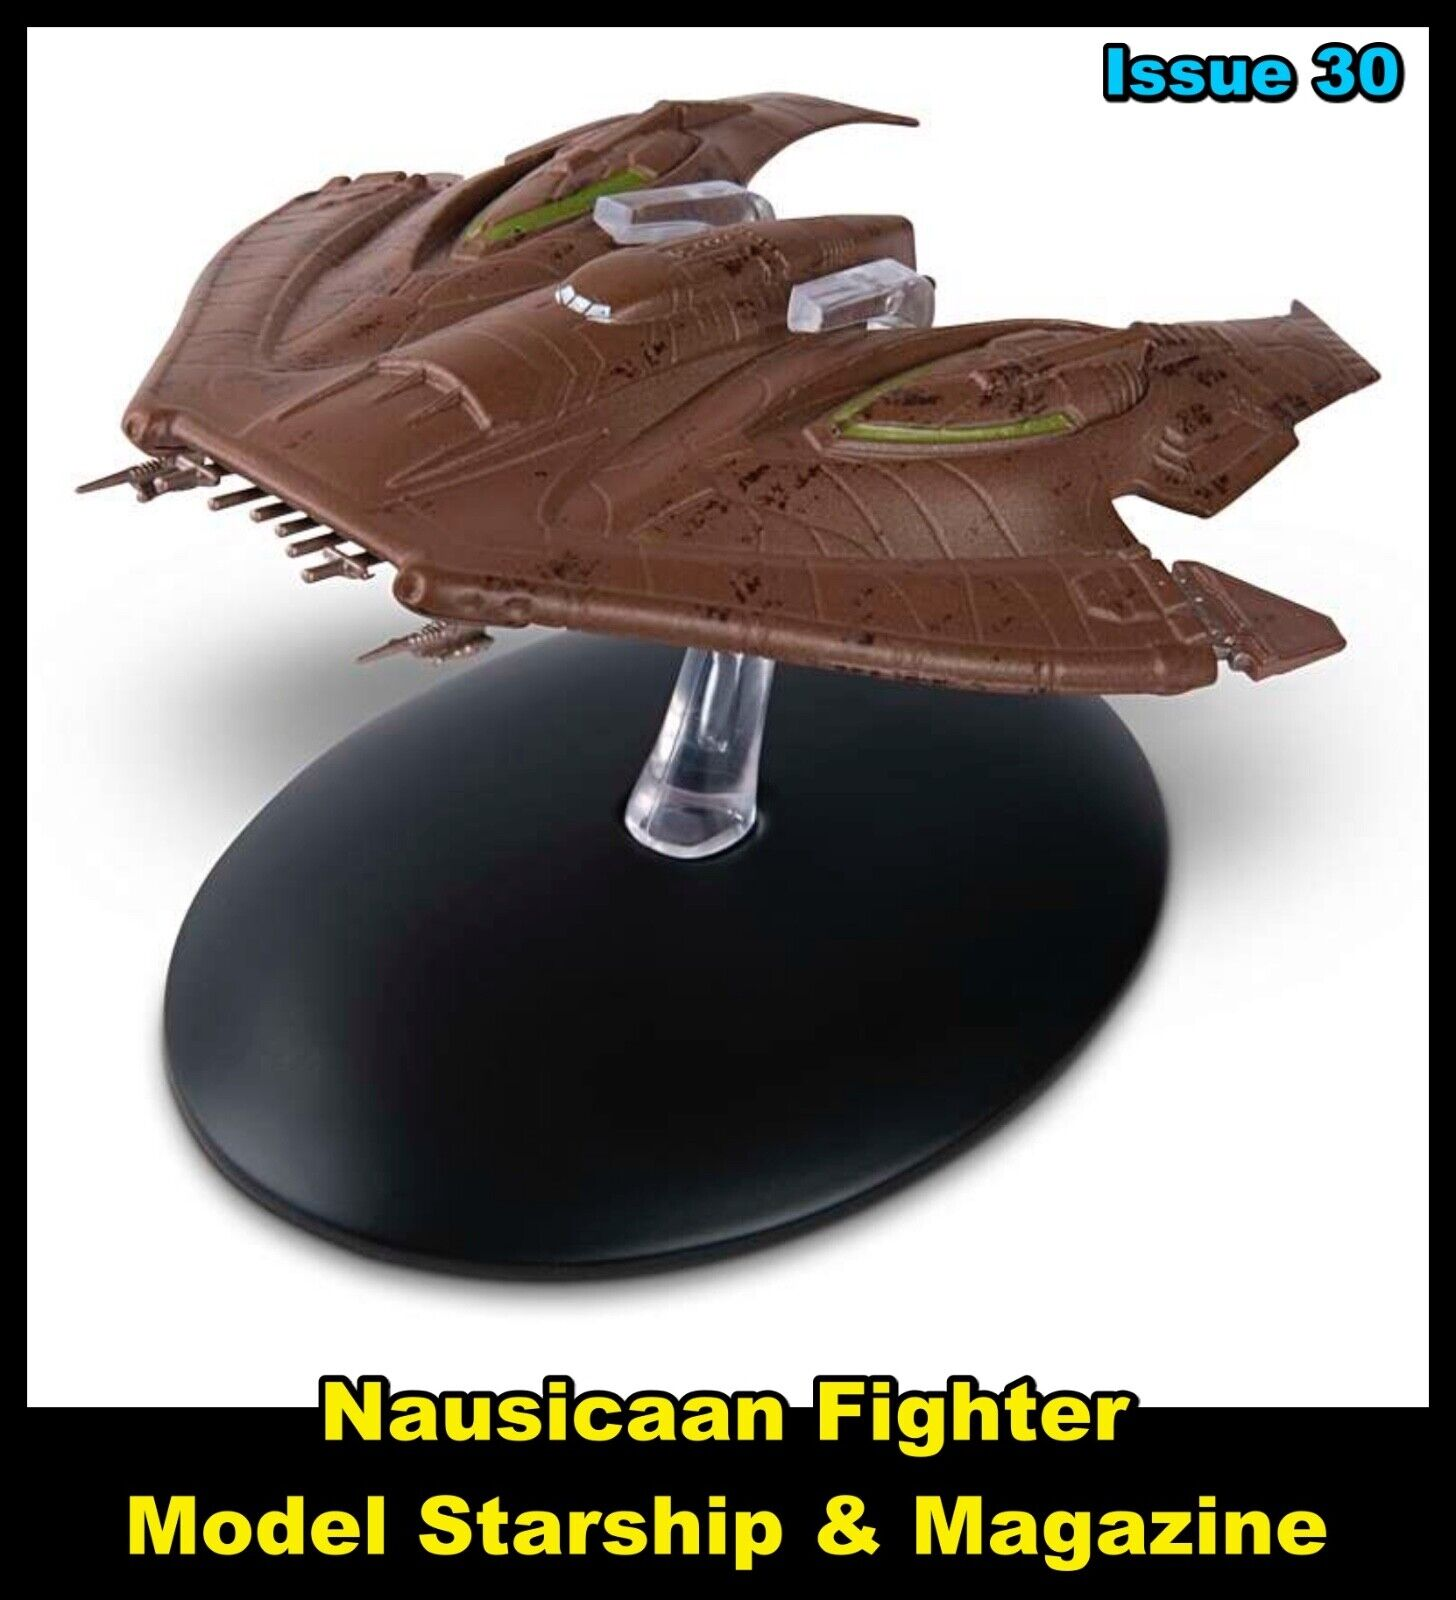 Issue 30: Nausicaan Fighter Starship Model